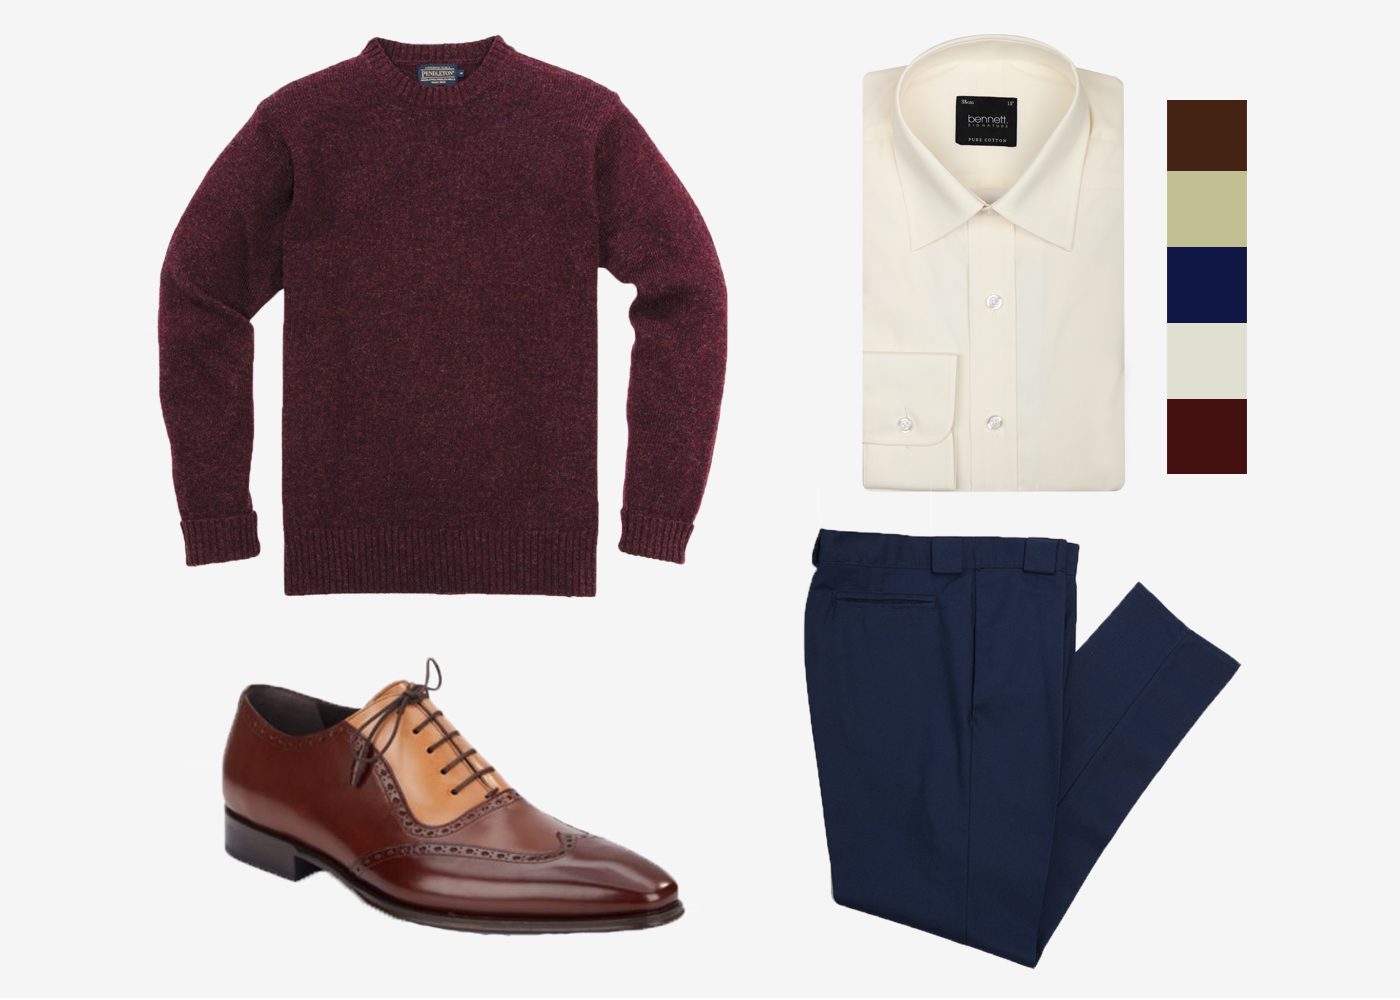 maroon, navy, and cream outfit idea with brown spectator shoes